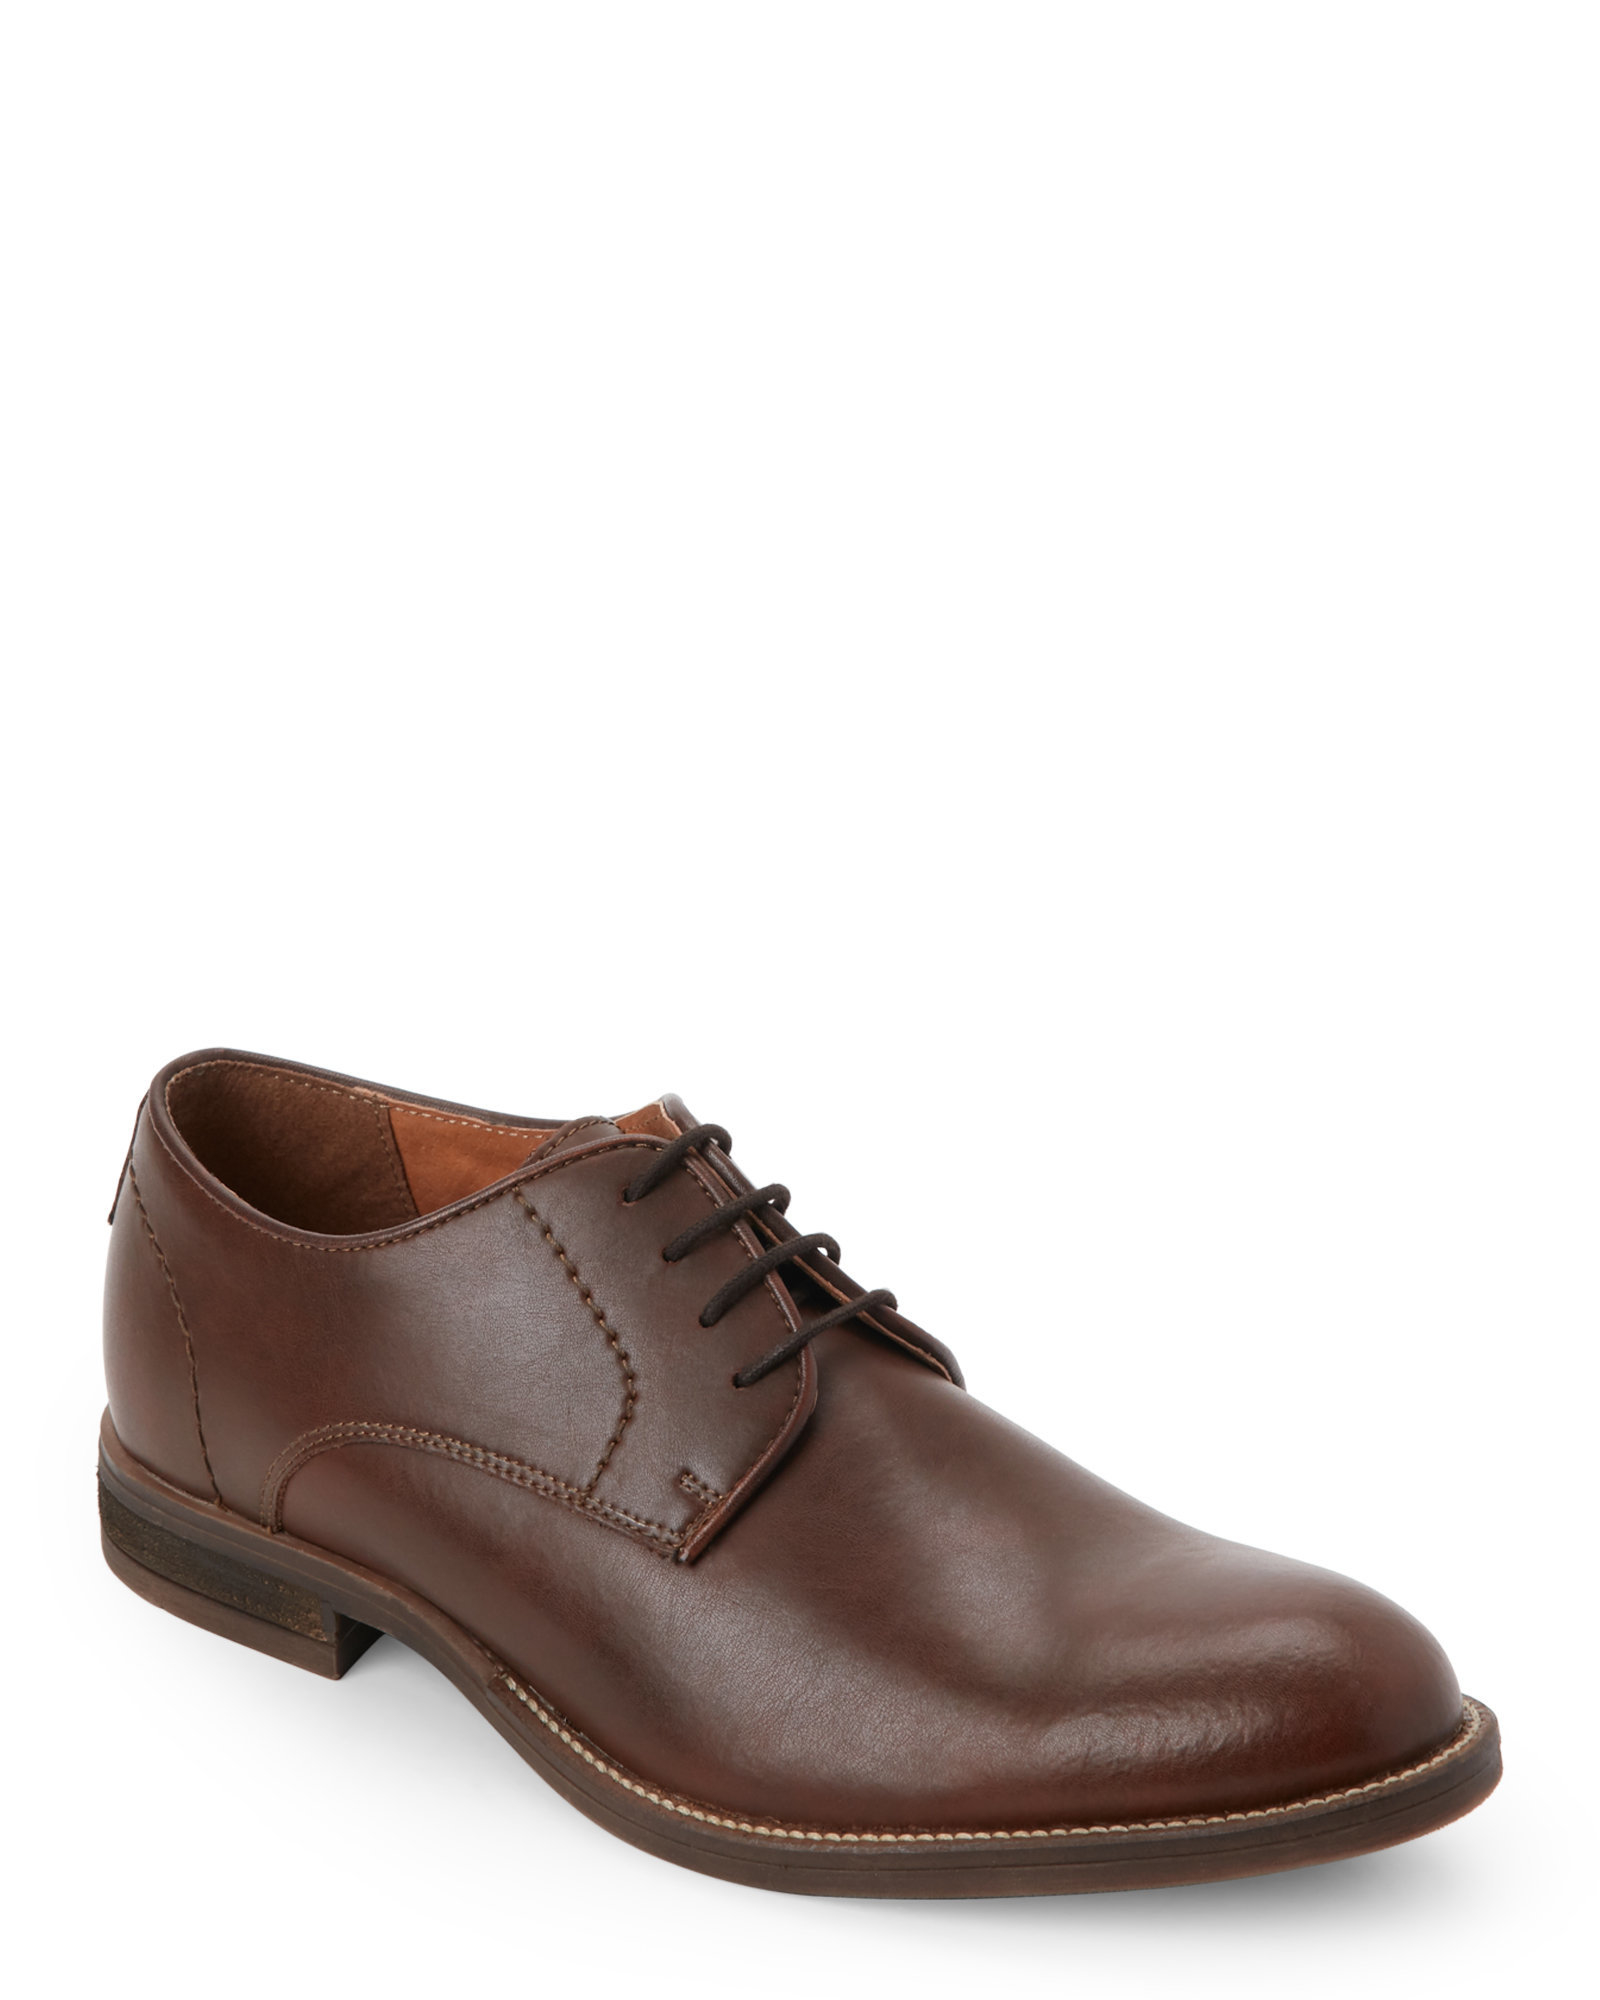 joseph abboud brown wesley plain toe oxfords in brown for